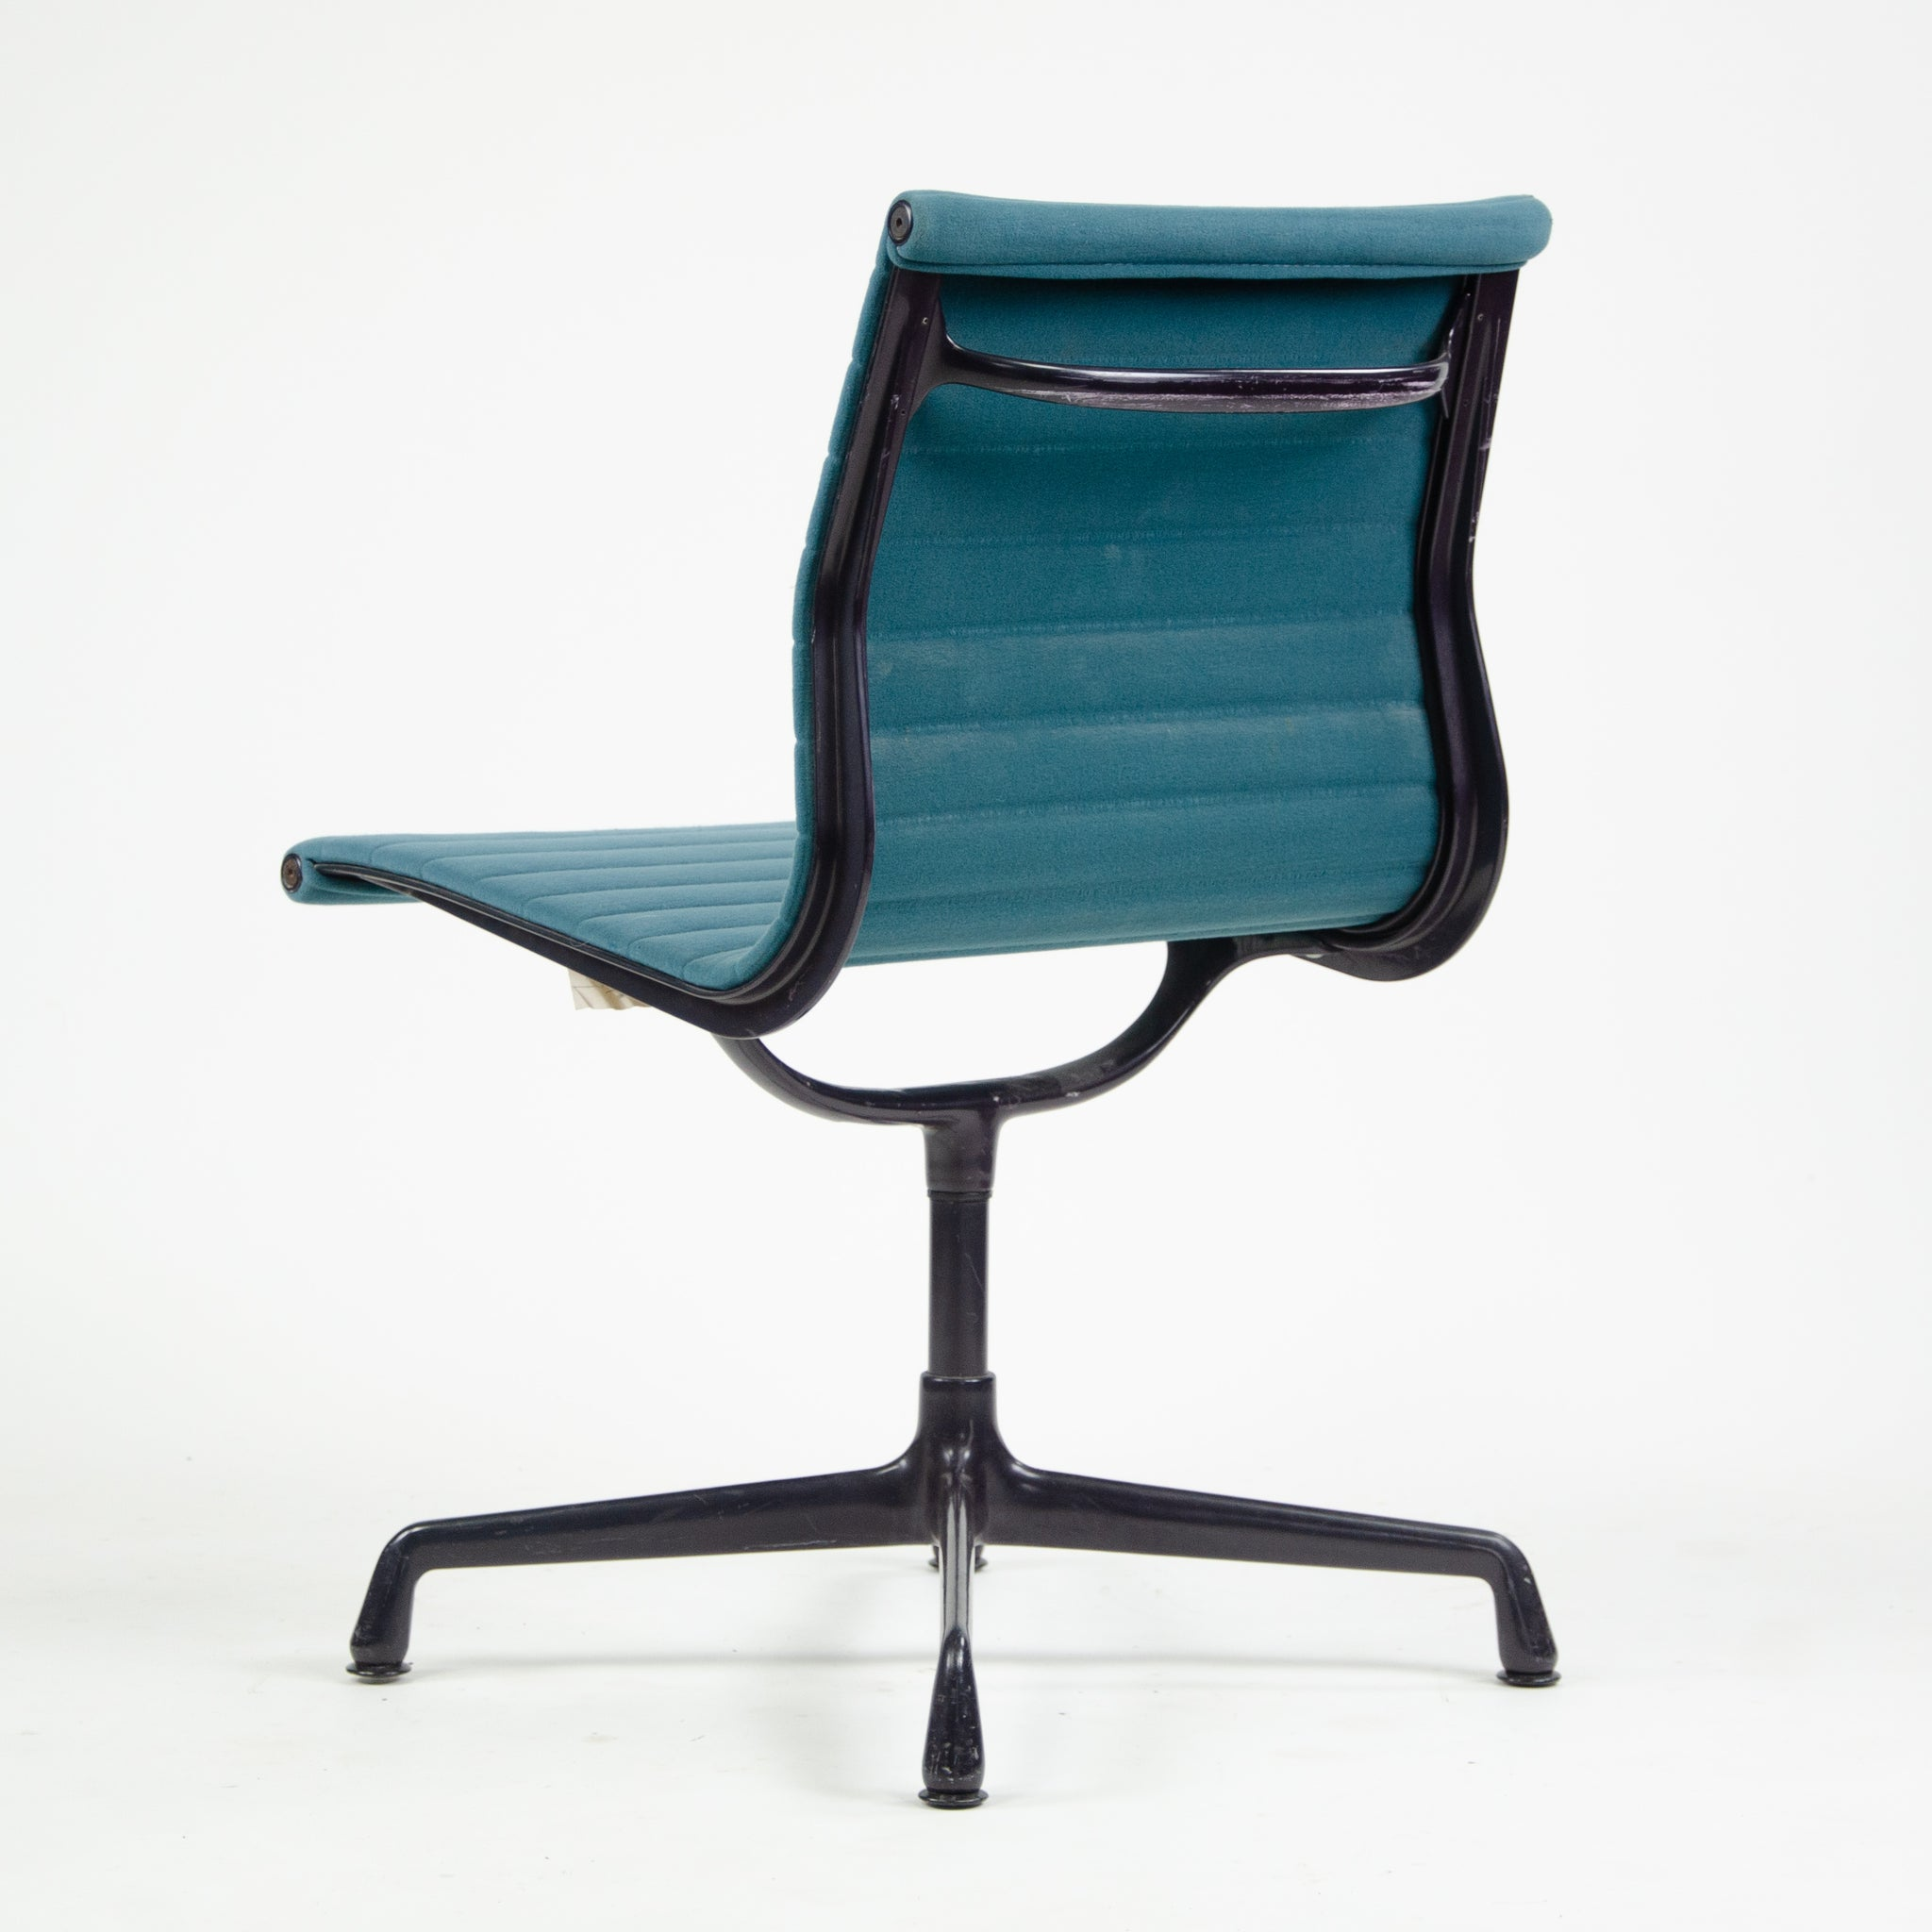 Herman Miller Eames 1985 Aluminum Group Executive Desk Chair Blue Fabric